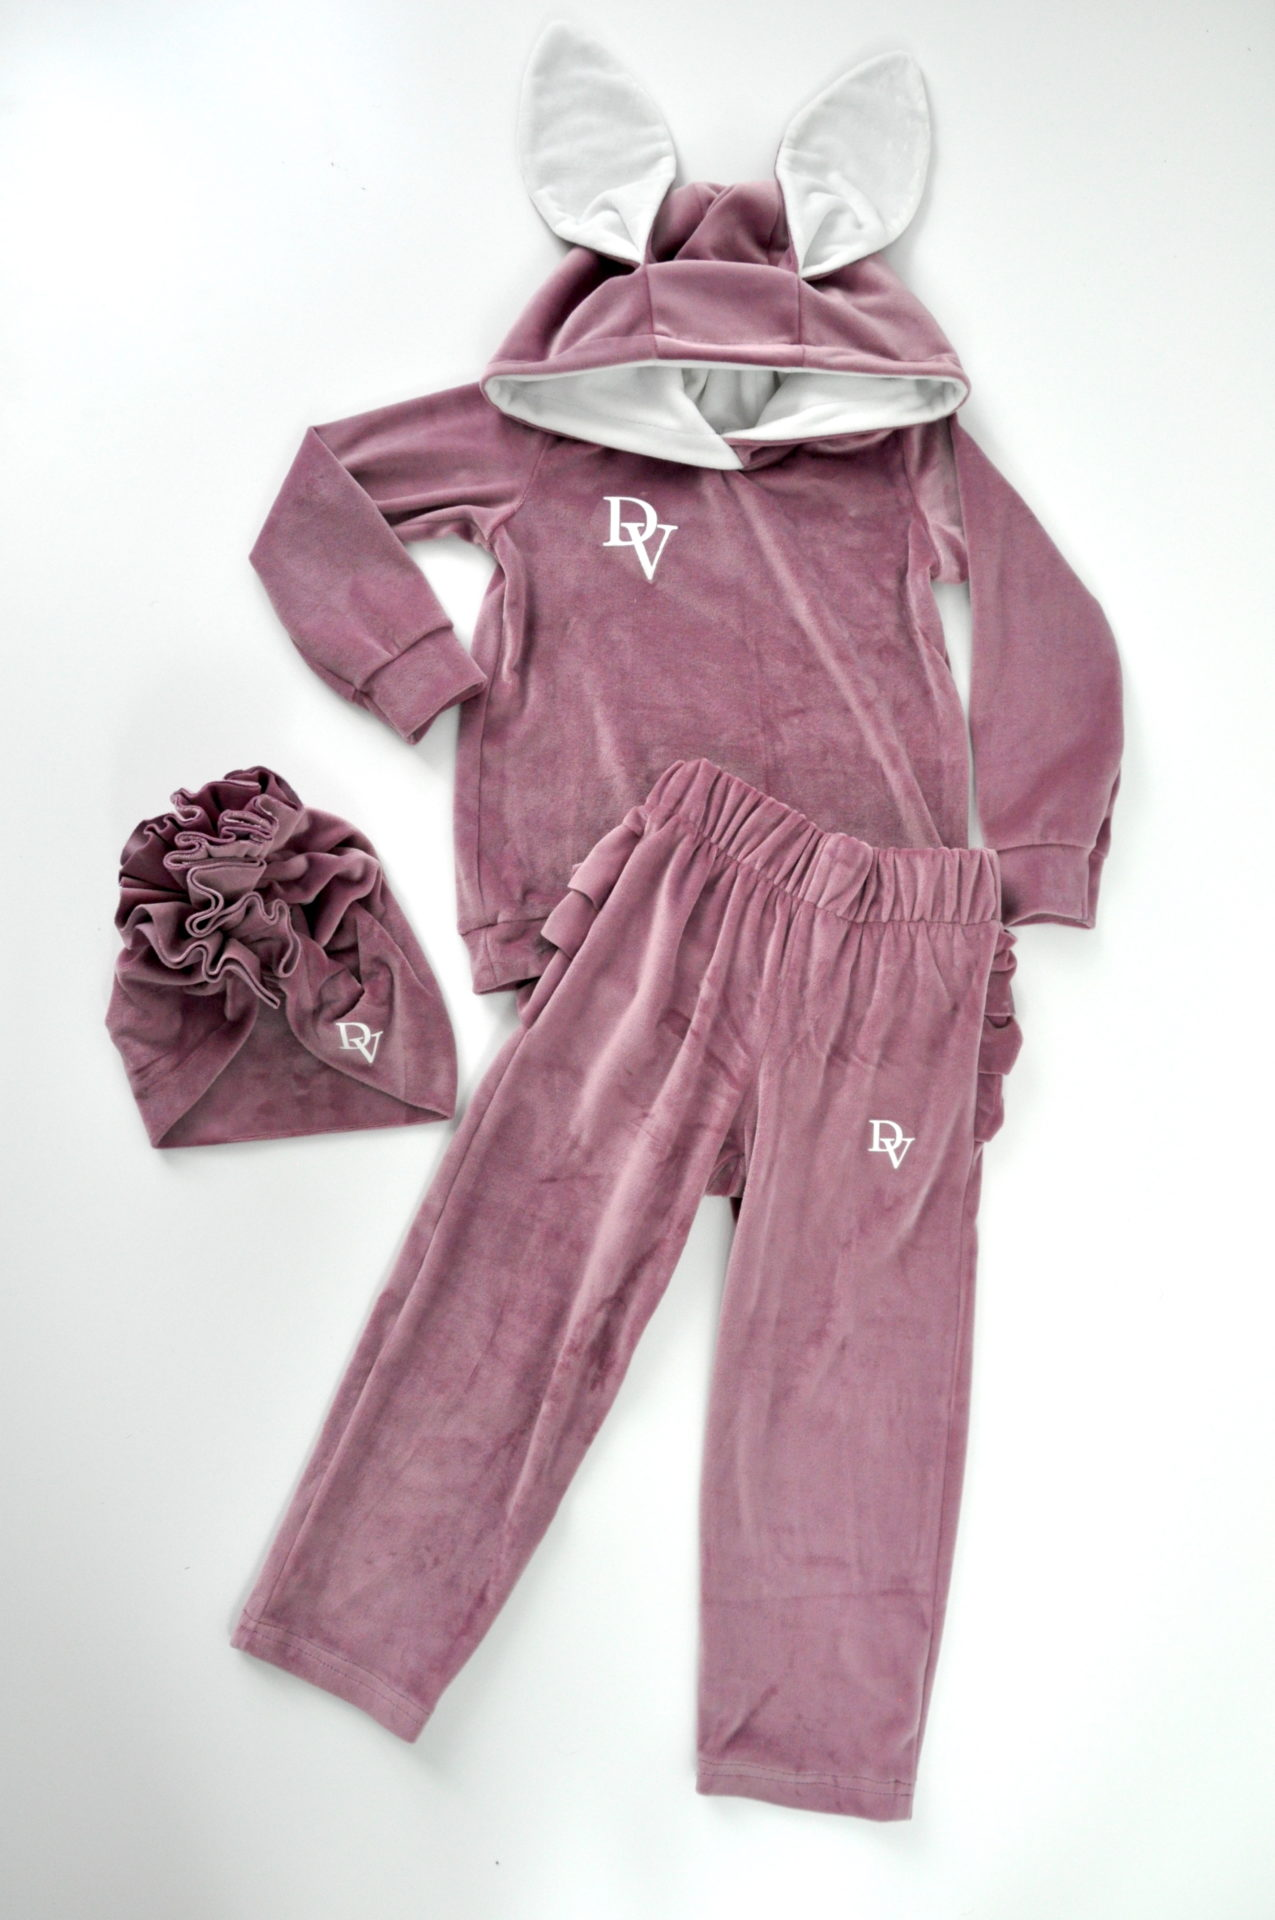 Girls' tracksuit Rabbit Pink. Shorts with ruffles. Turban